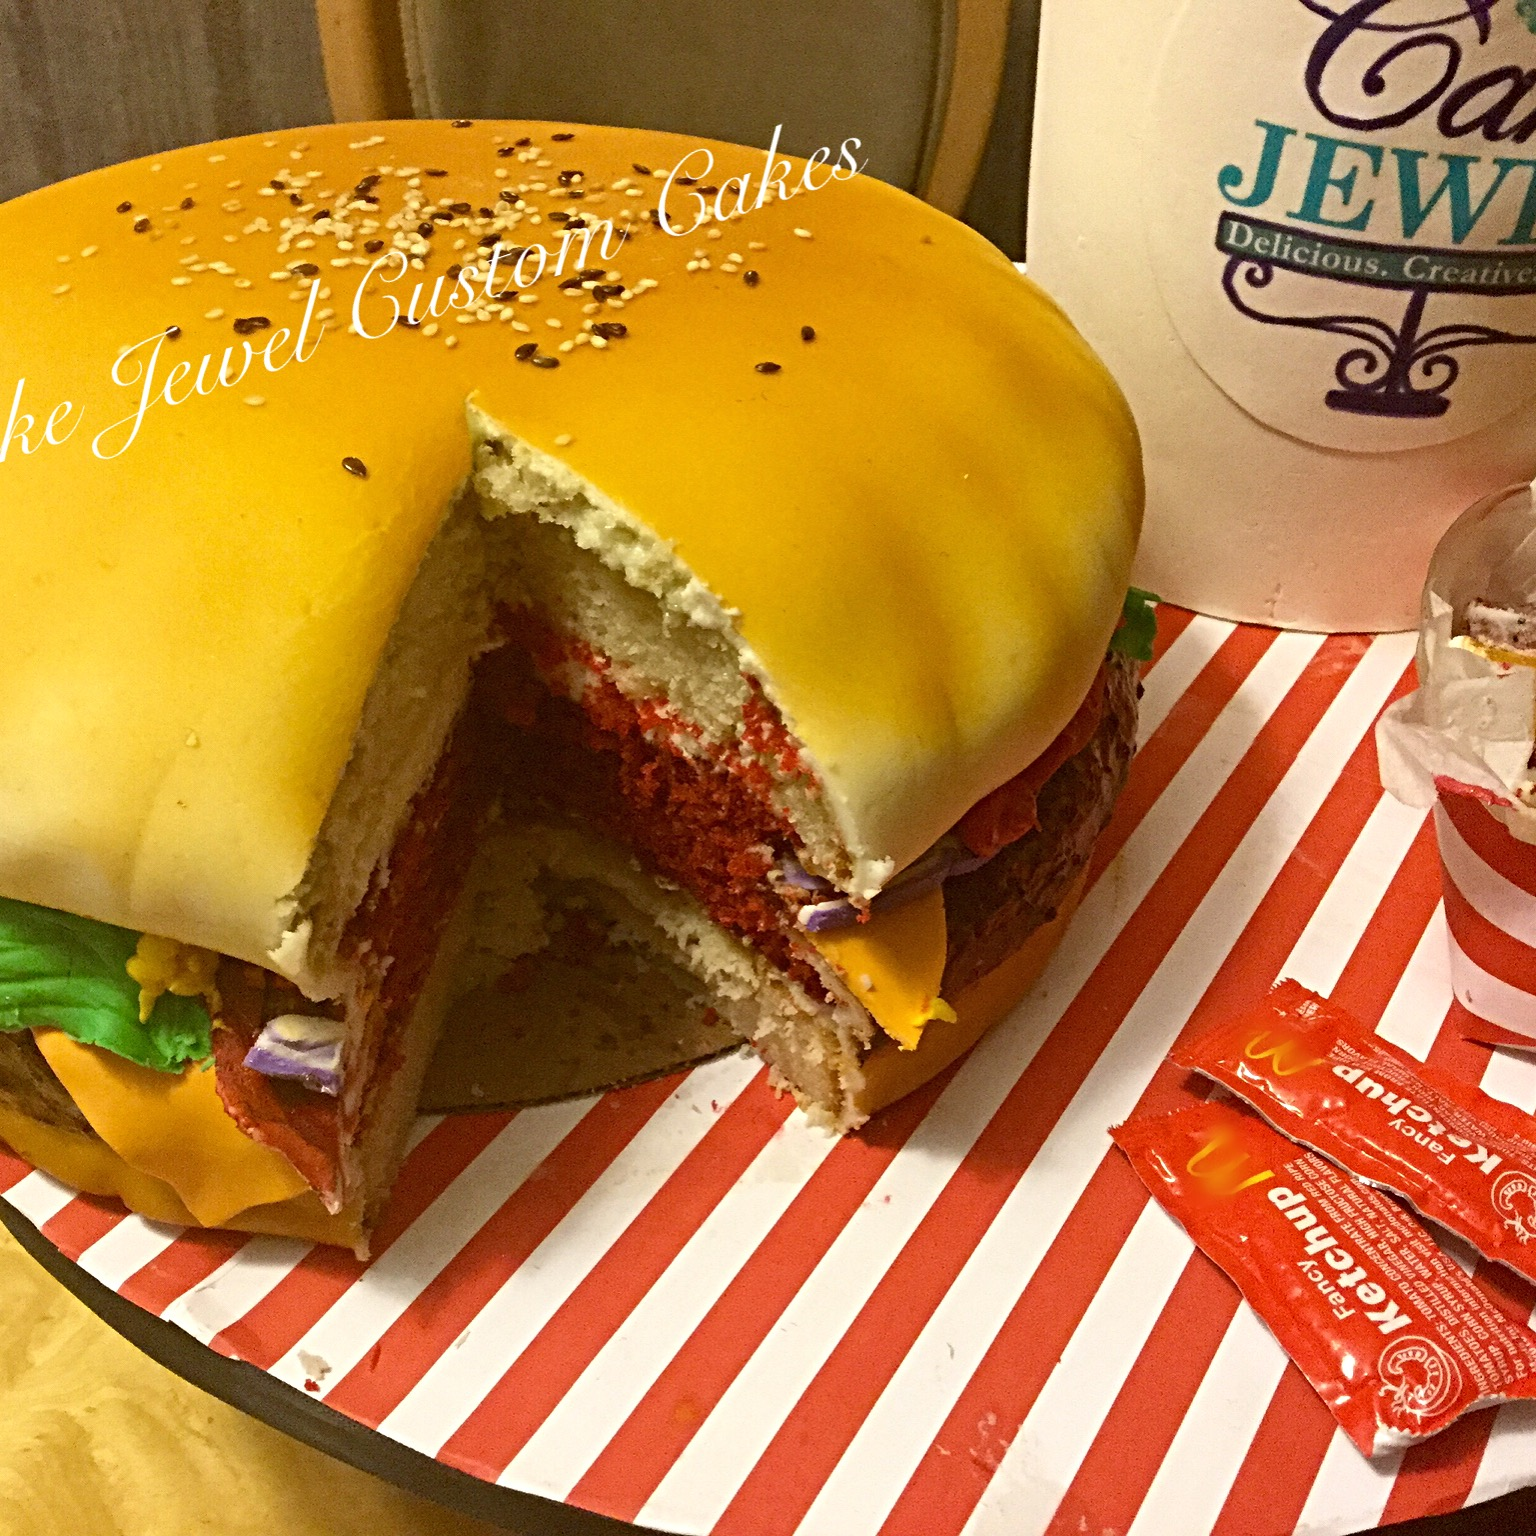 Gigantic hamburger cake